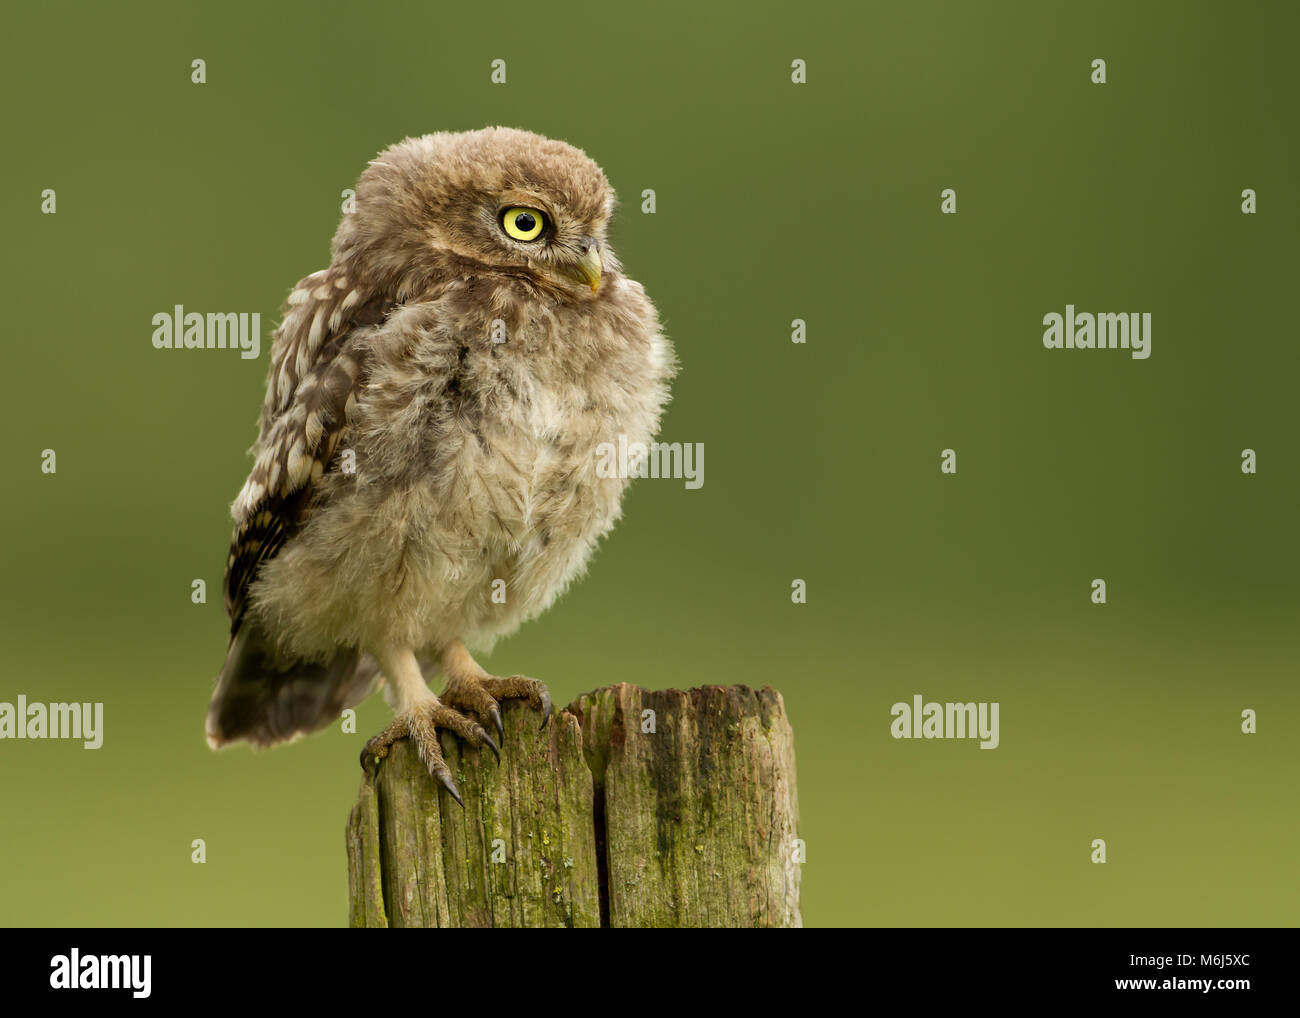 Juvenile Little owl perching on a post against green background, UK. - Stock Image